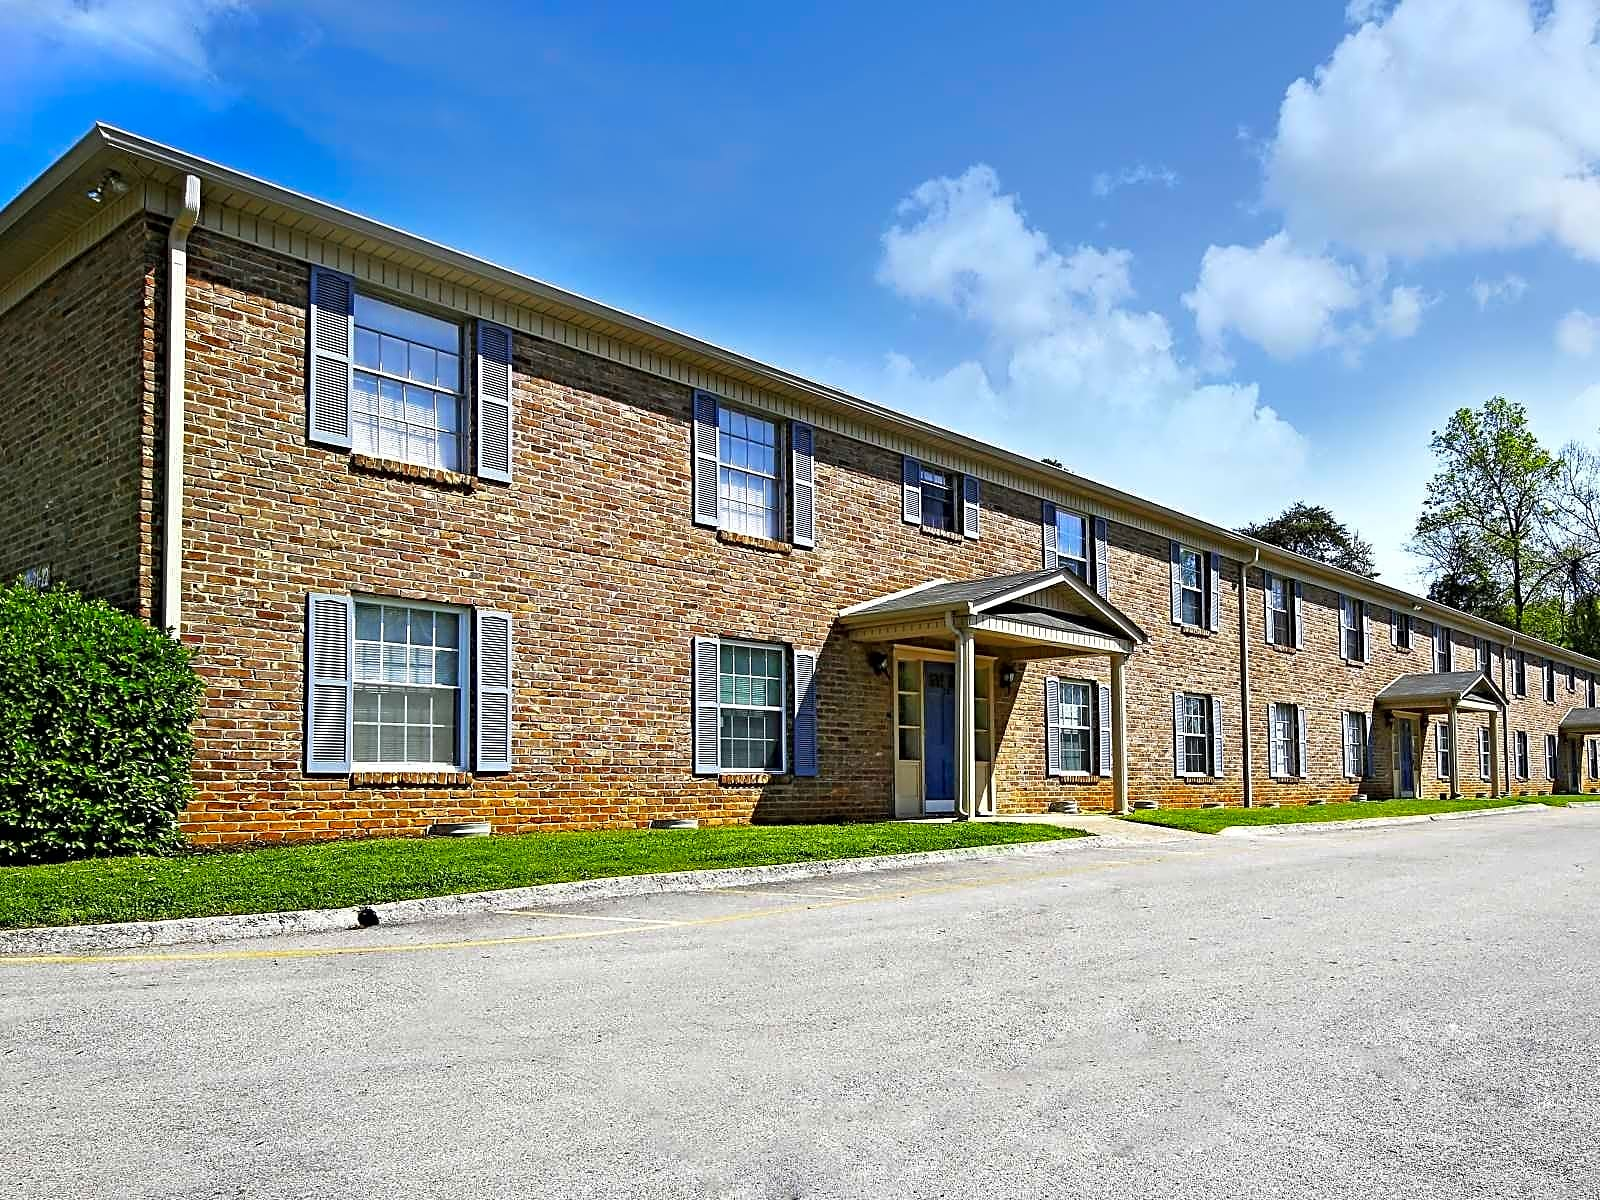 South College Knoxville Tn >> Deane Hill Apartments - Knoxville, TN 37919